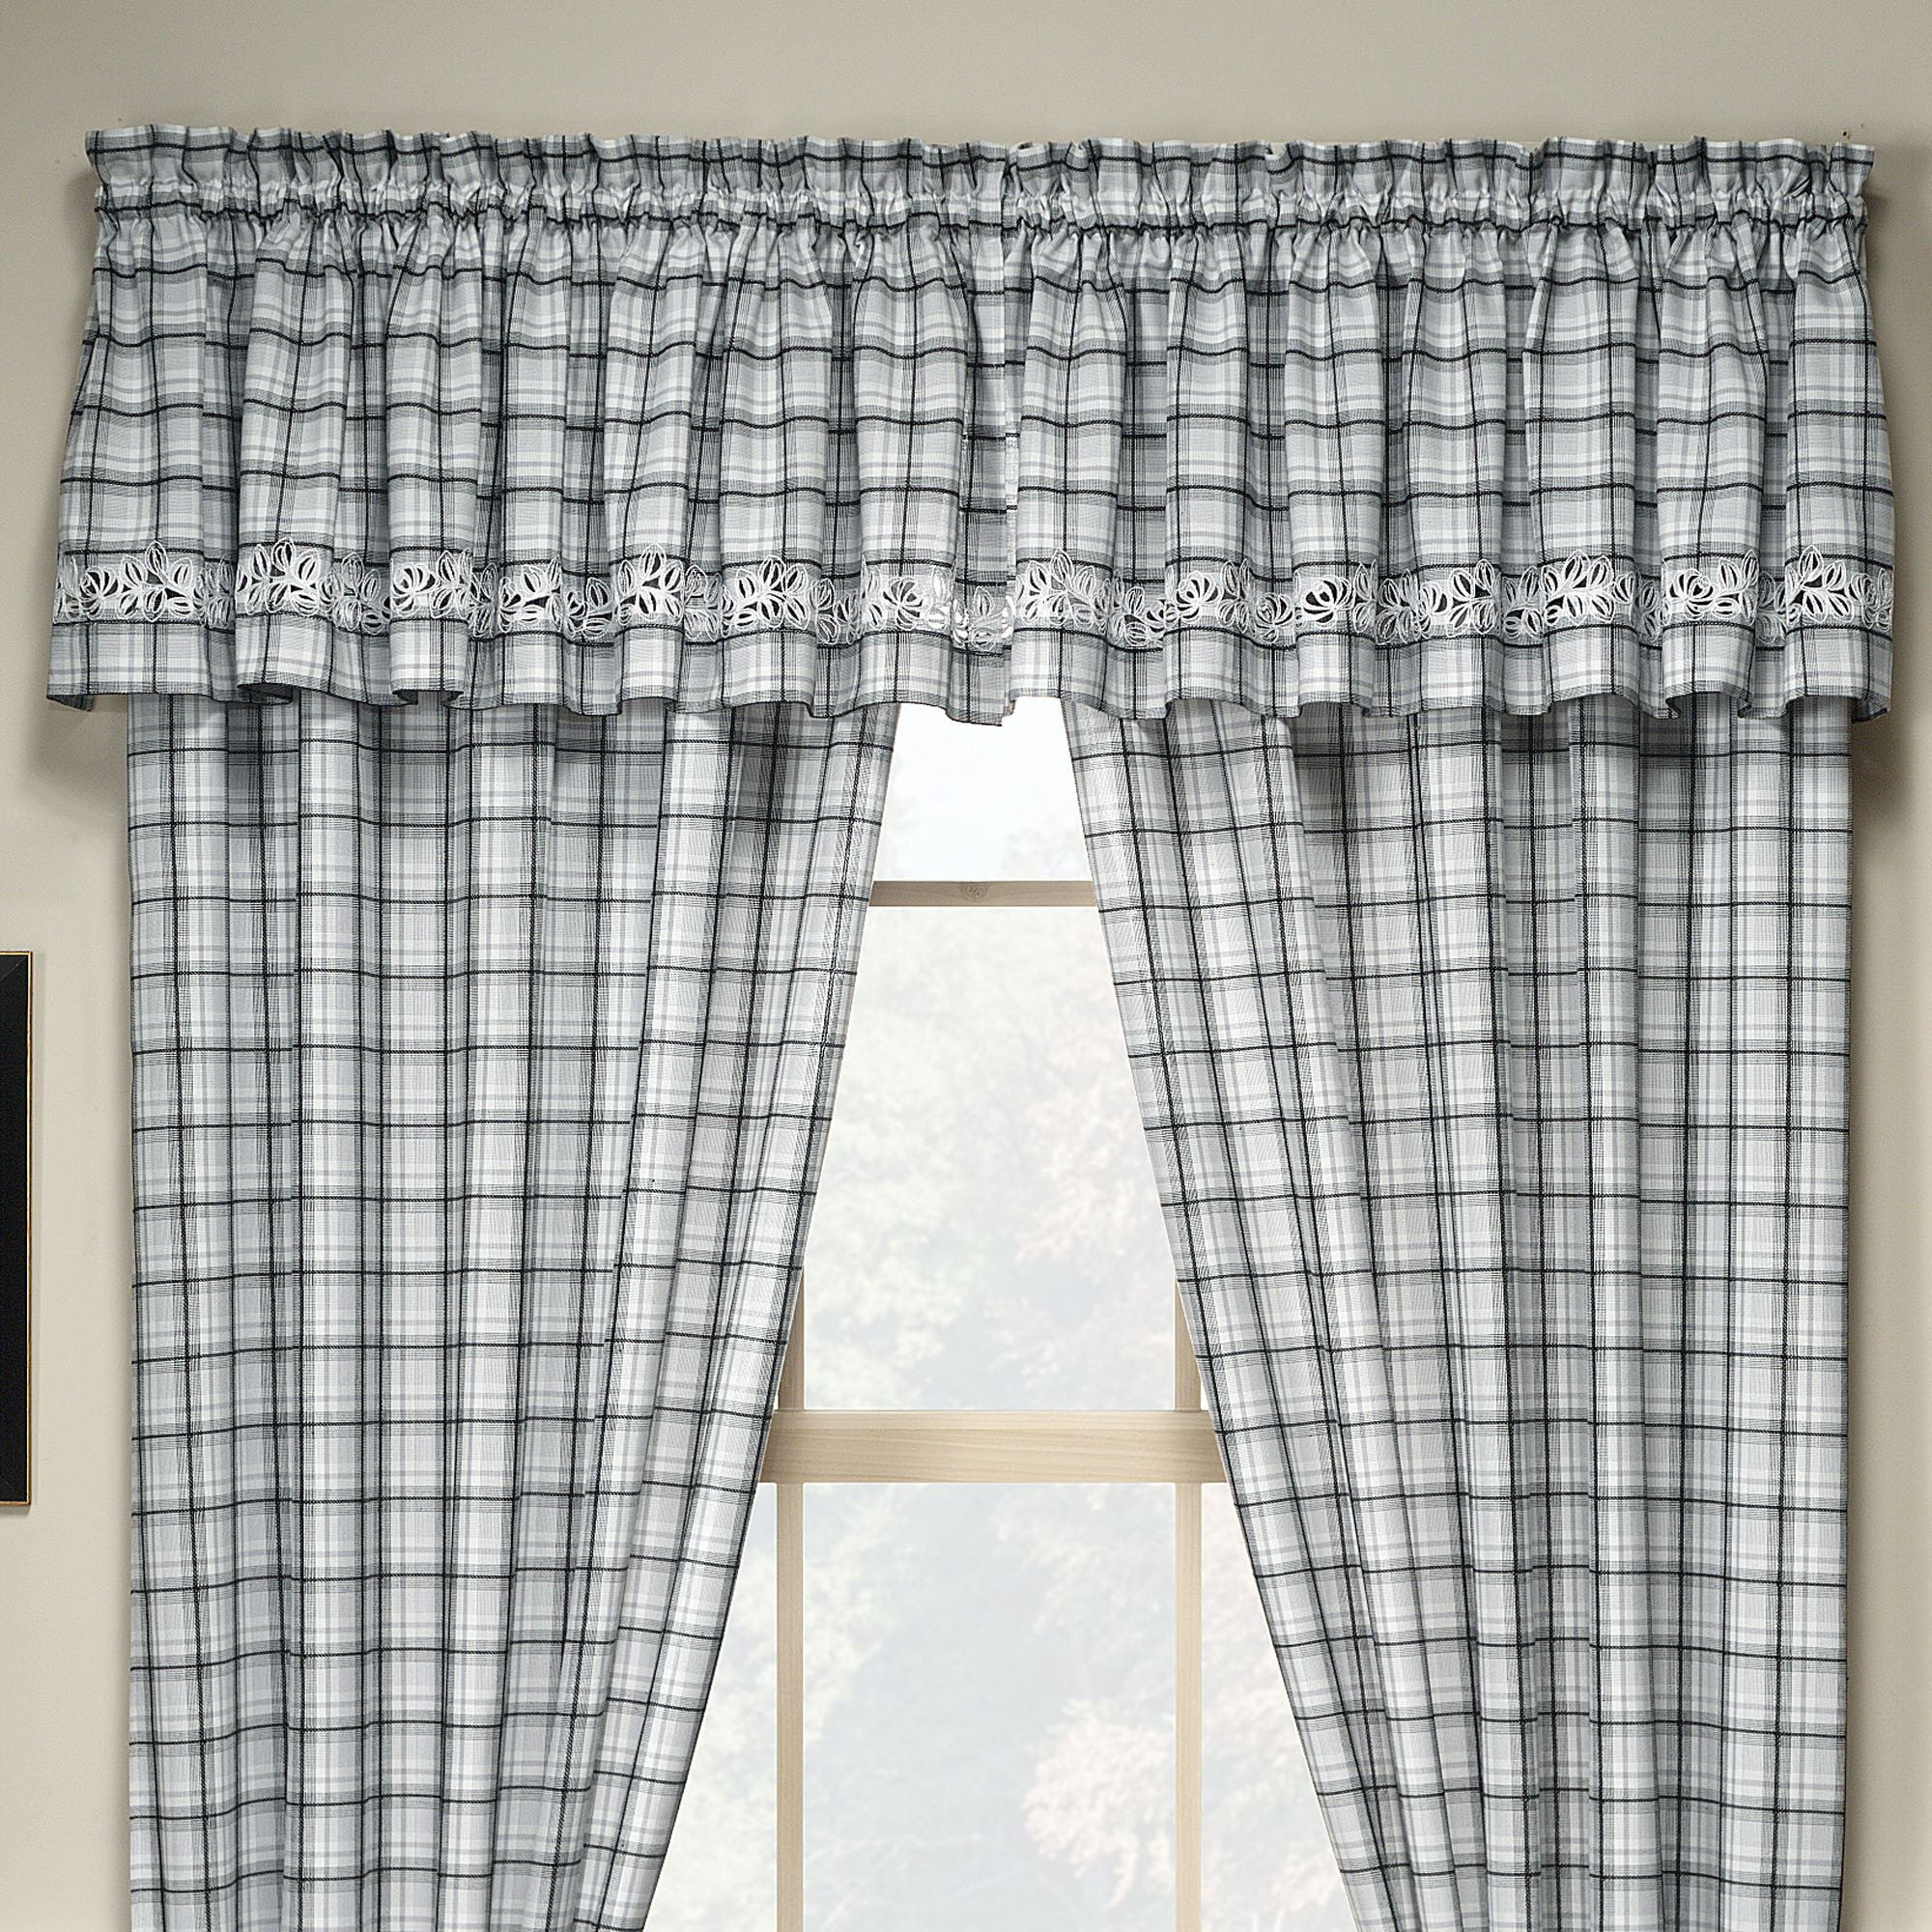 with shades place valances curtain valance interior brown room windows living white plaid patterned fire window roller ethnic colorful combined between bay beautiful and for